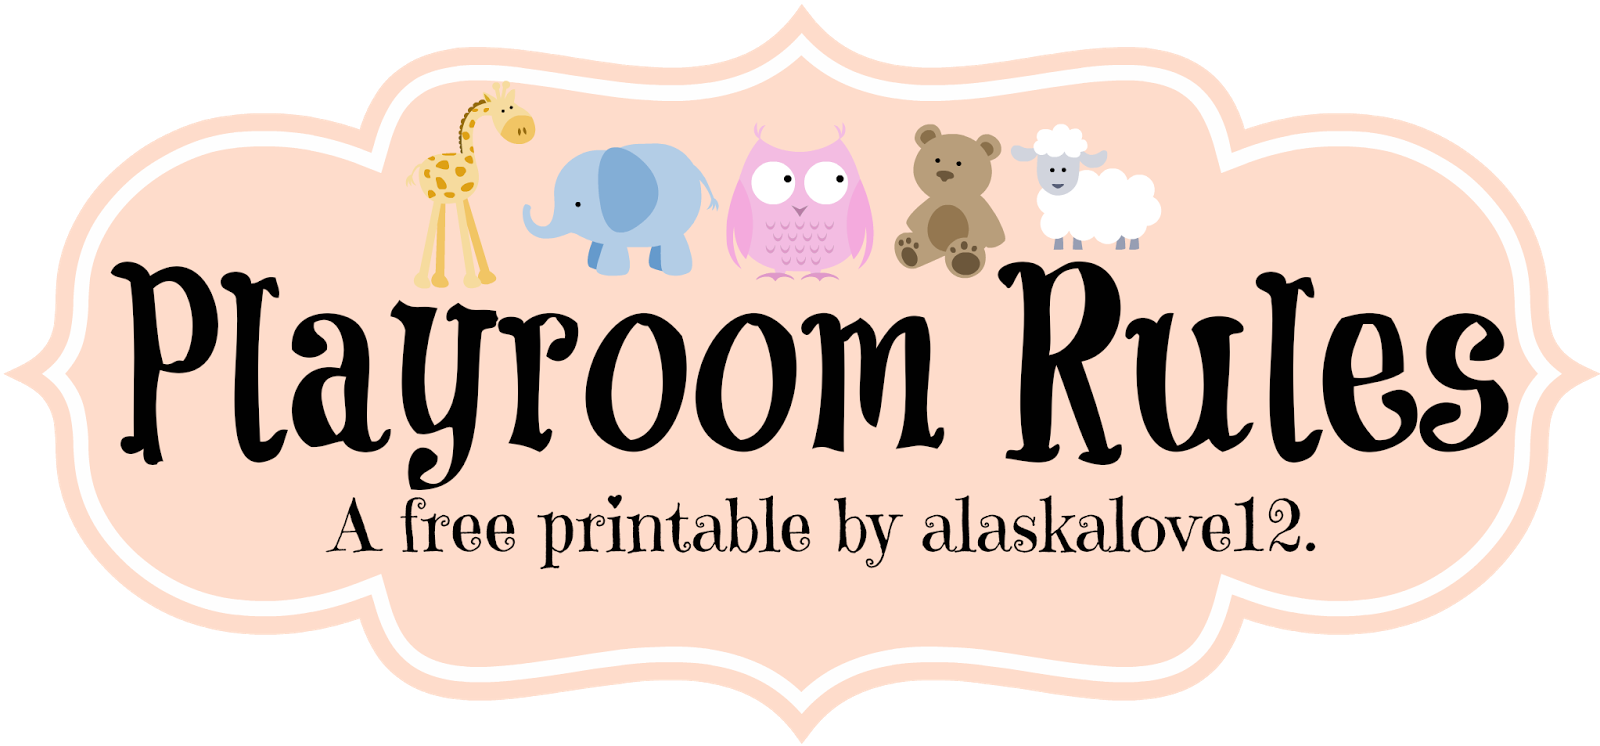 alaskalove12 playroom a free printable